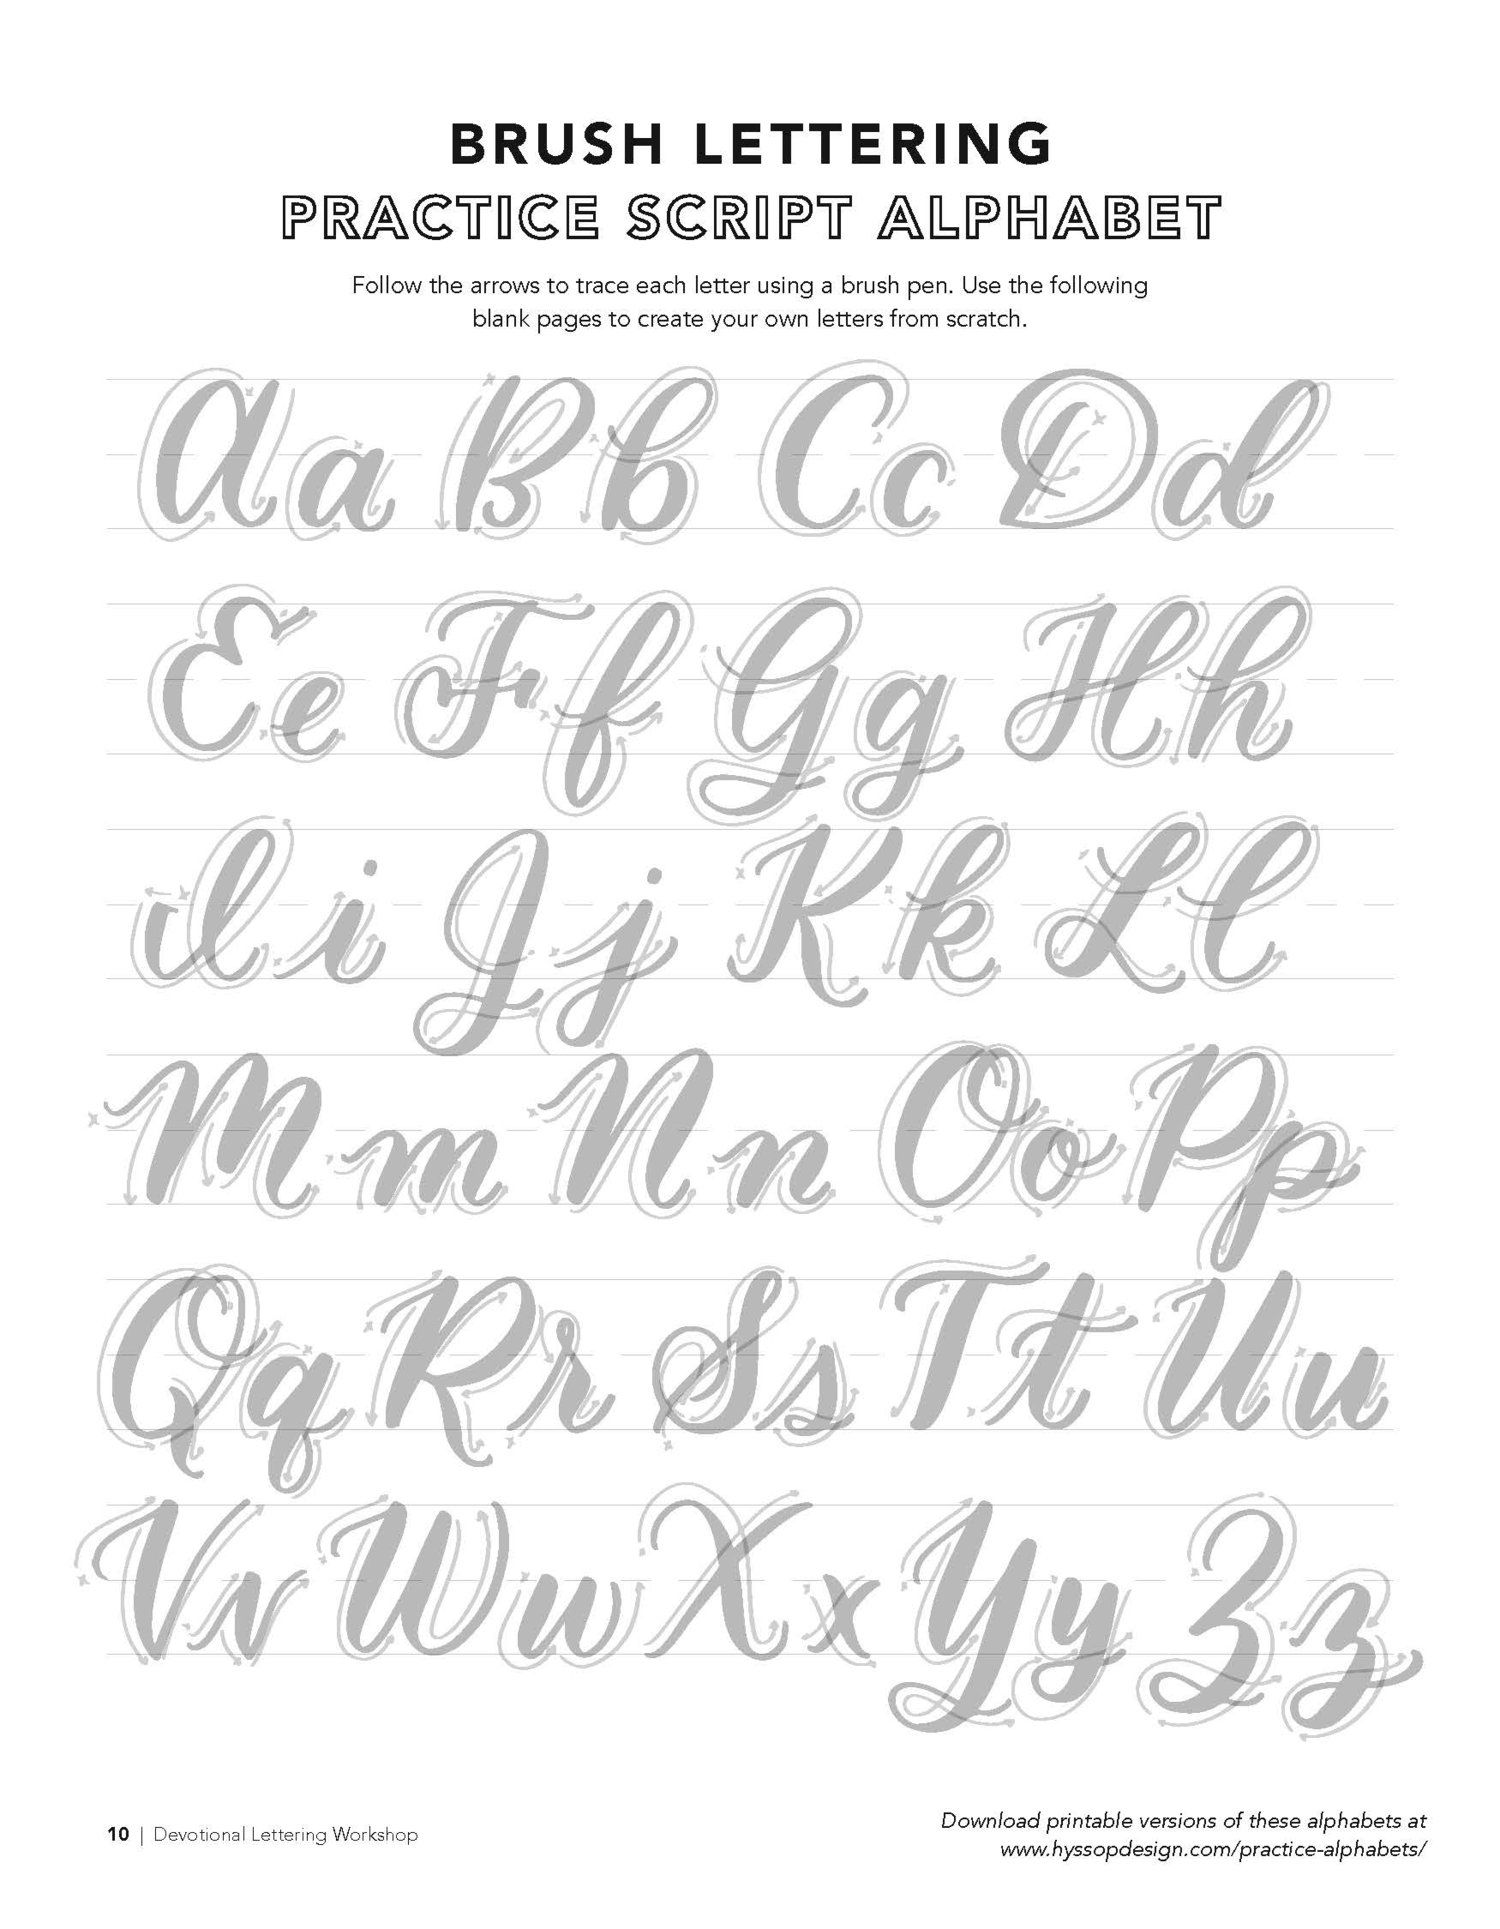 Example Comp Page 10 Jpg Brush Lettering Worksheet Lettering Alphabet Brush Lettering Practice